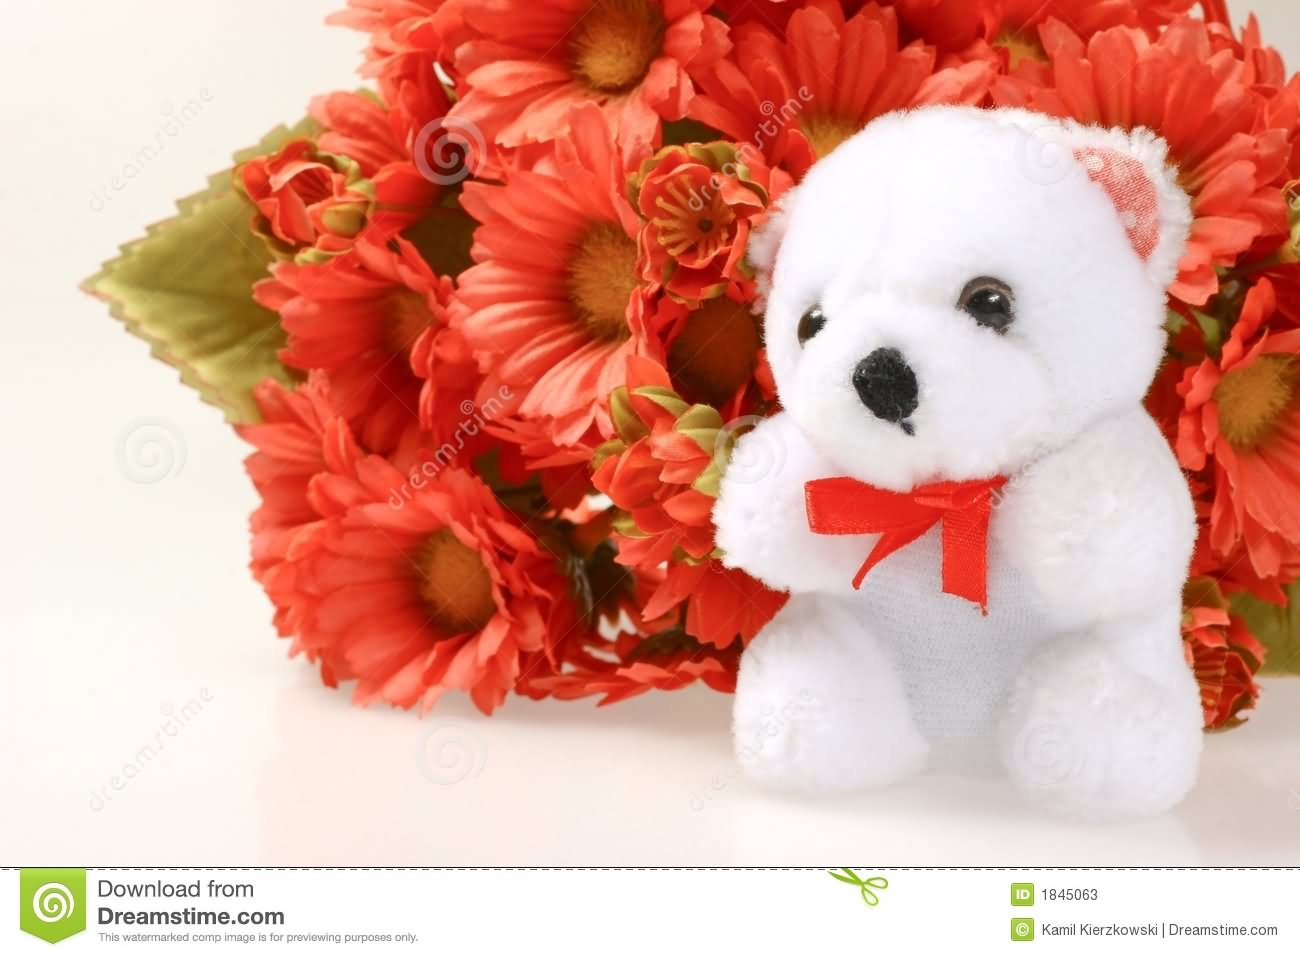 Teddy bear with pink roses - photo#37